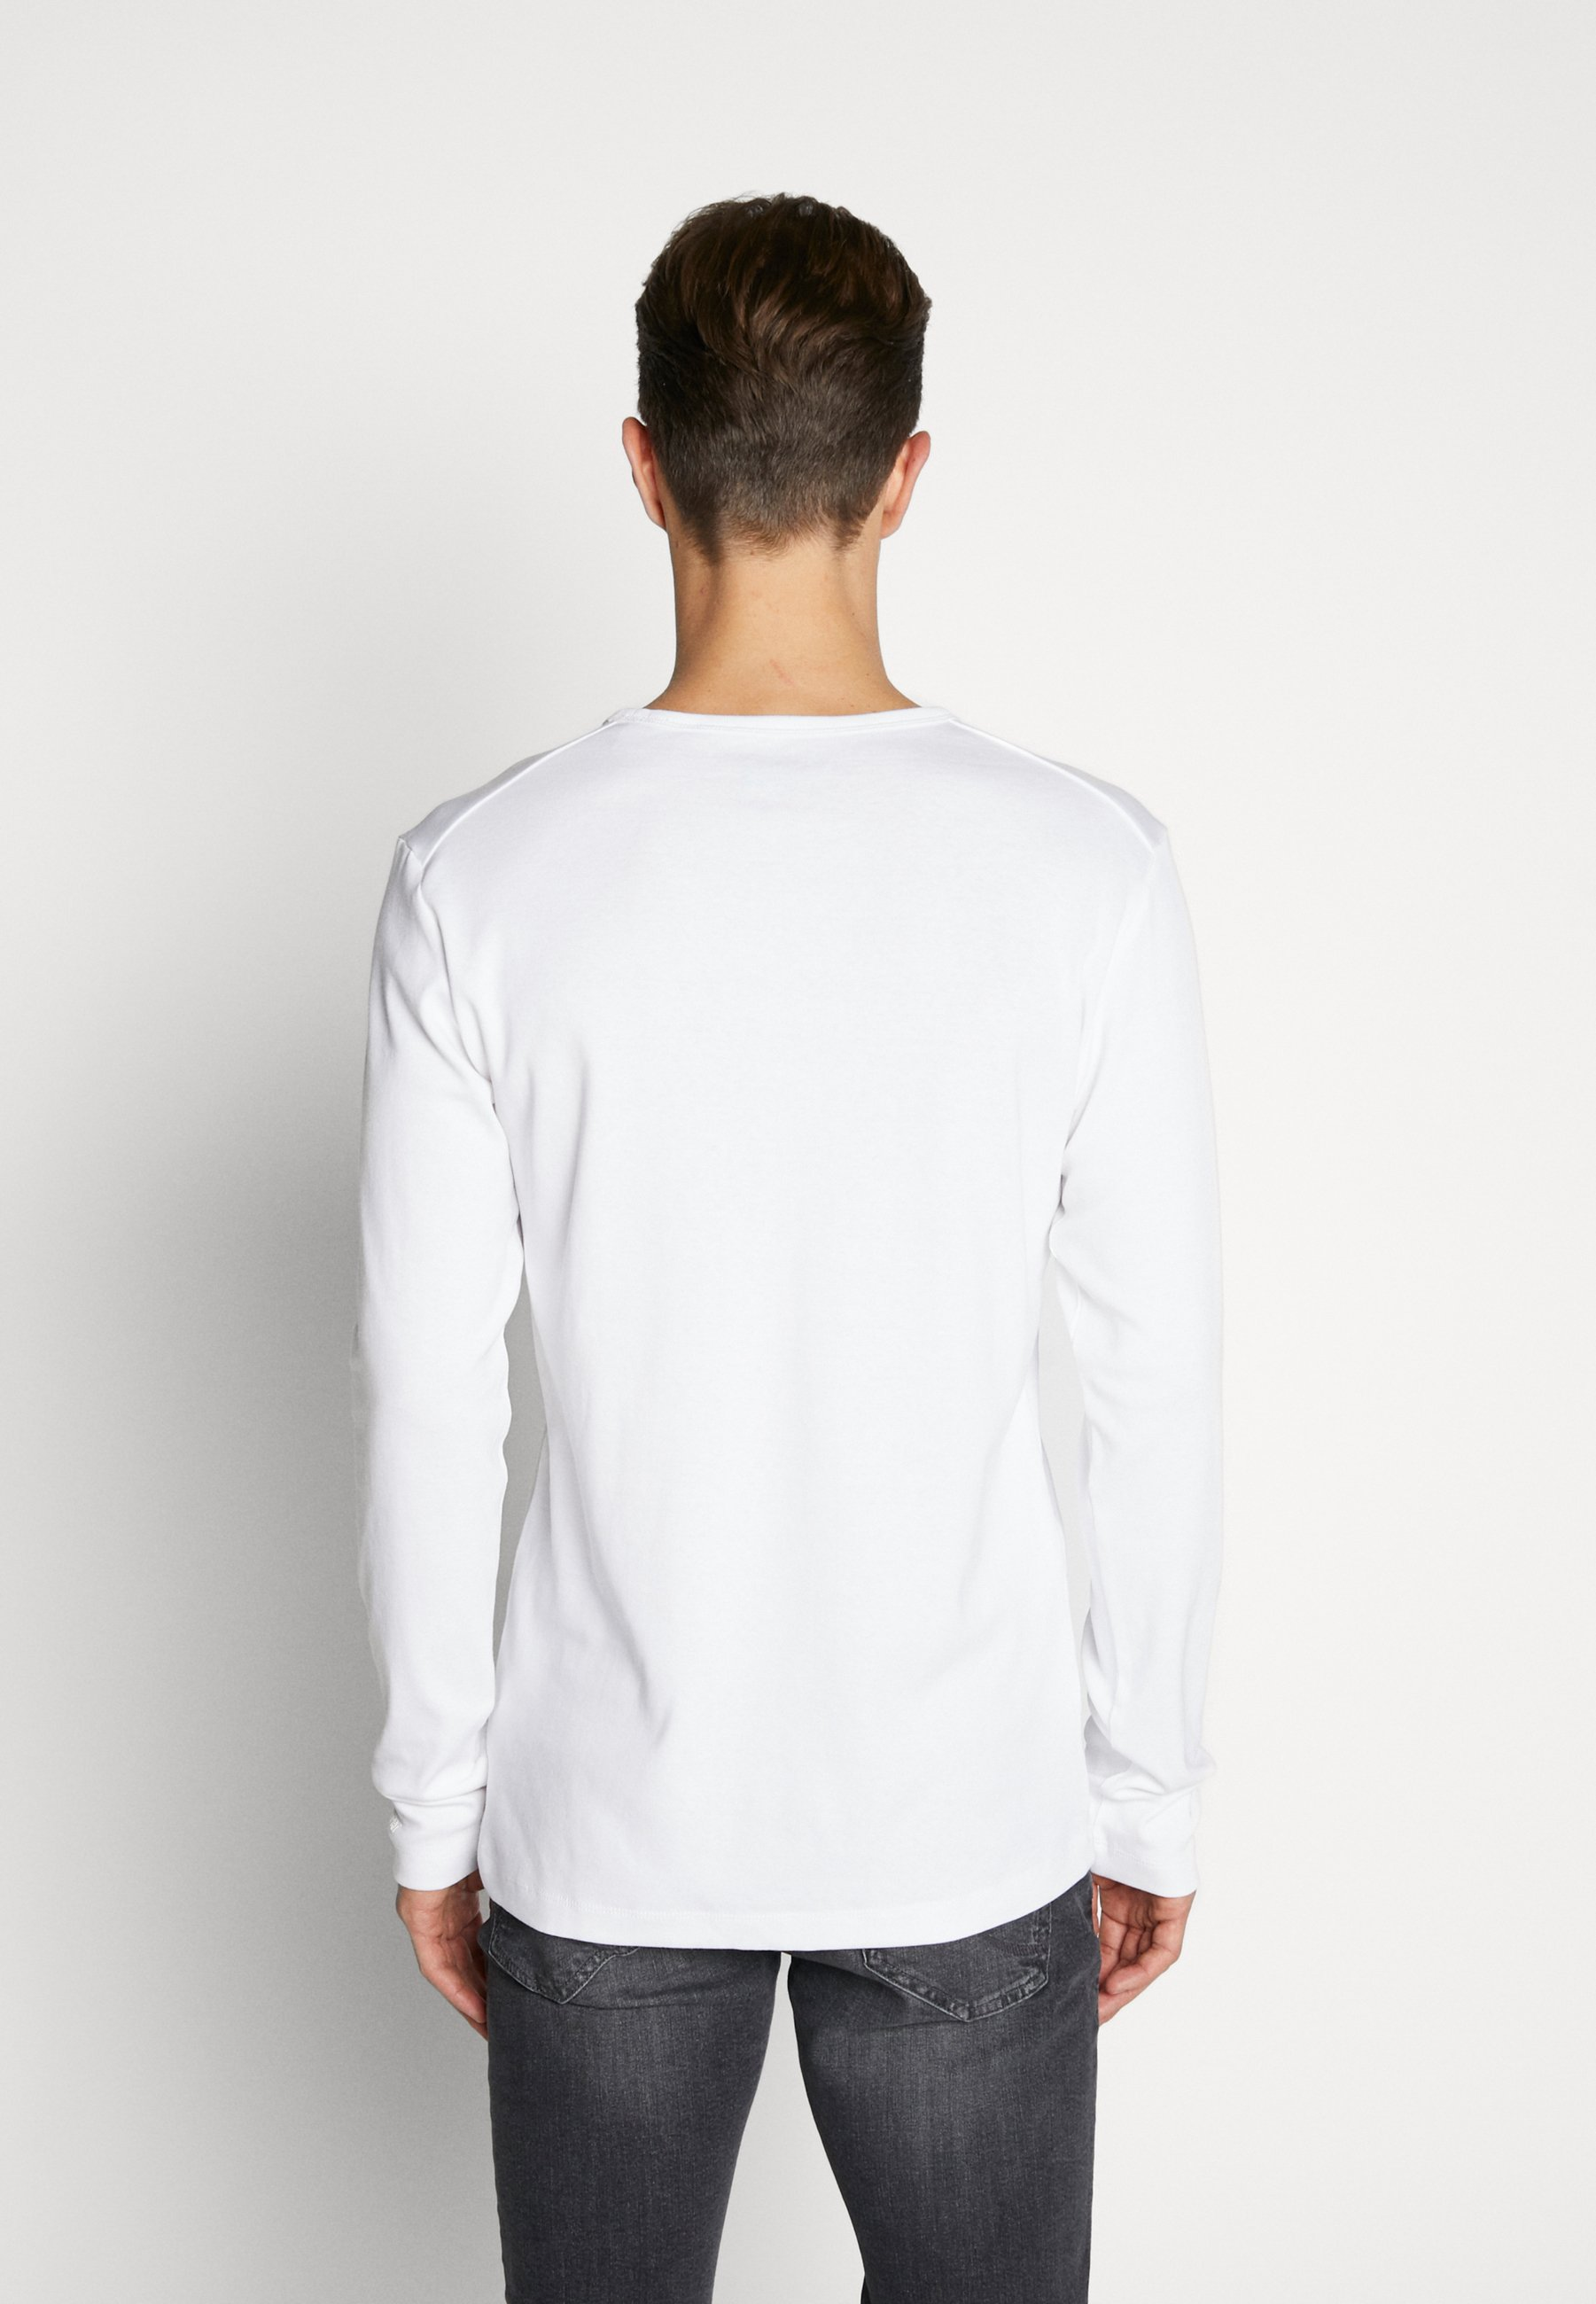 Esprit Long sleeved top - white sc242